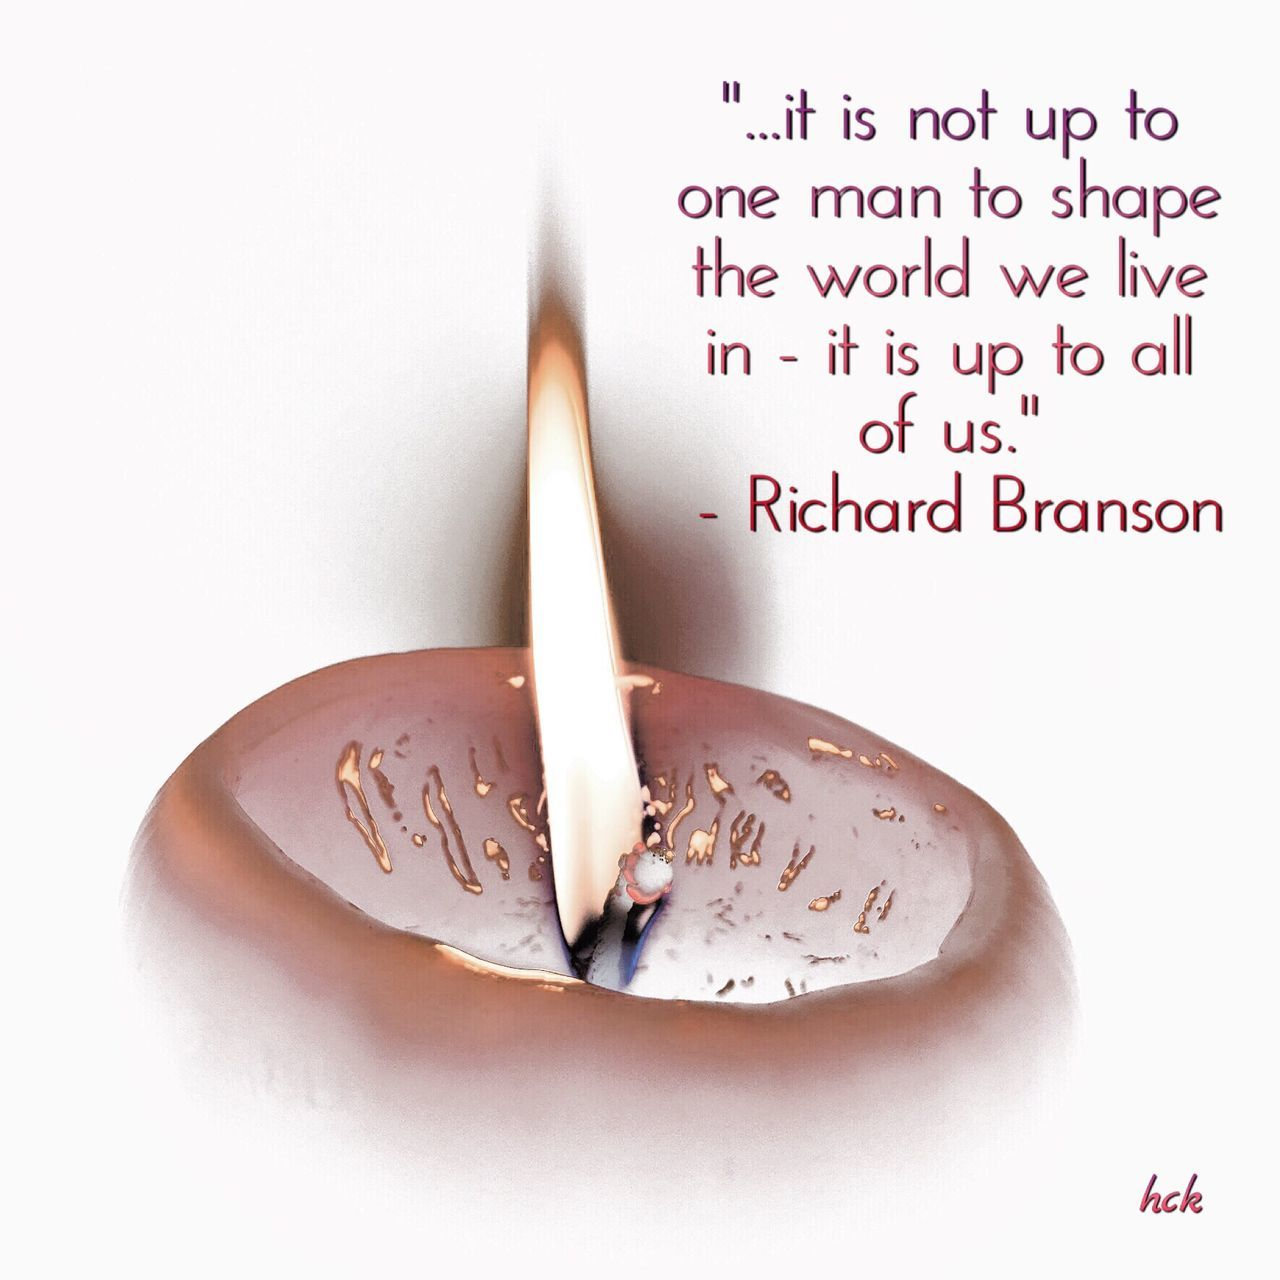 """... it is not up to one man to shape the world we live in - it is up to all of us."" - Richard Branson Text Burning Close-up No People Be The Change Be The Light Be An Inspiration It Takes A Village Unity"